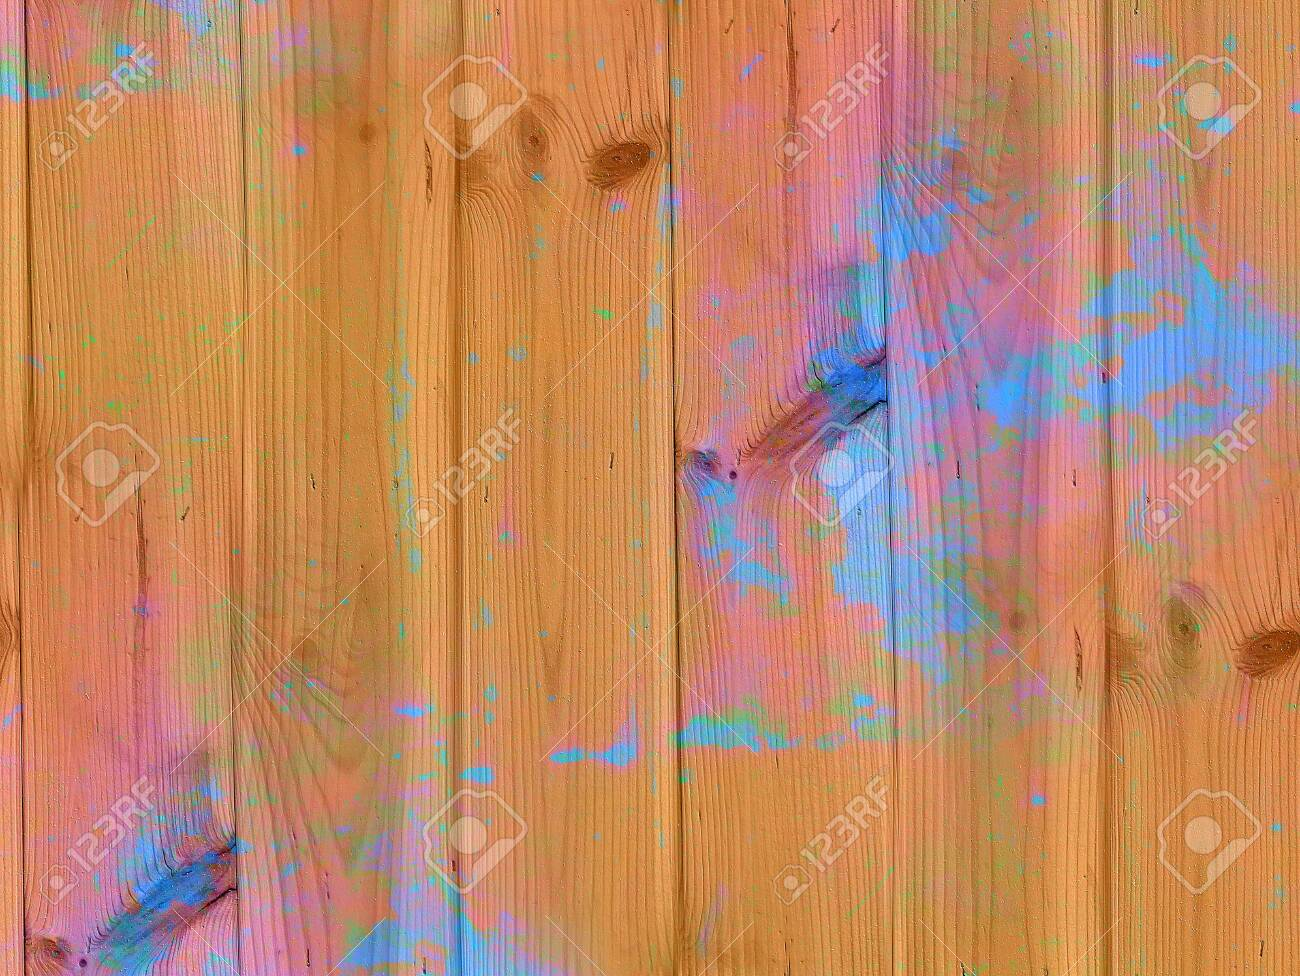 Texture of old wood. Colorful grunge background. Damaged surface. - 133797826